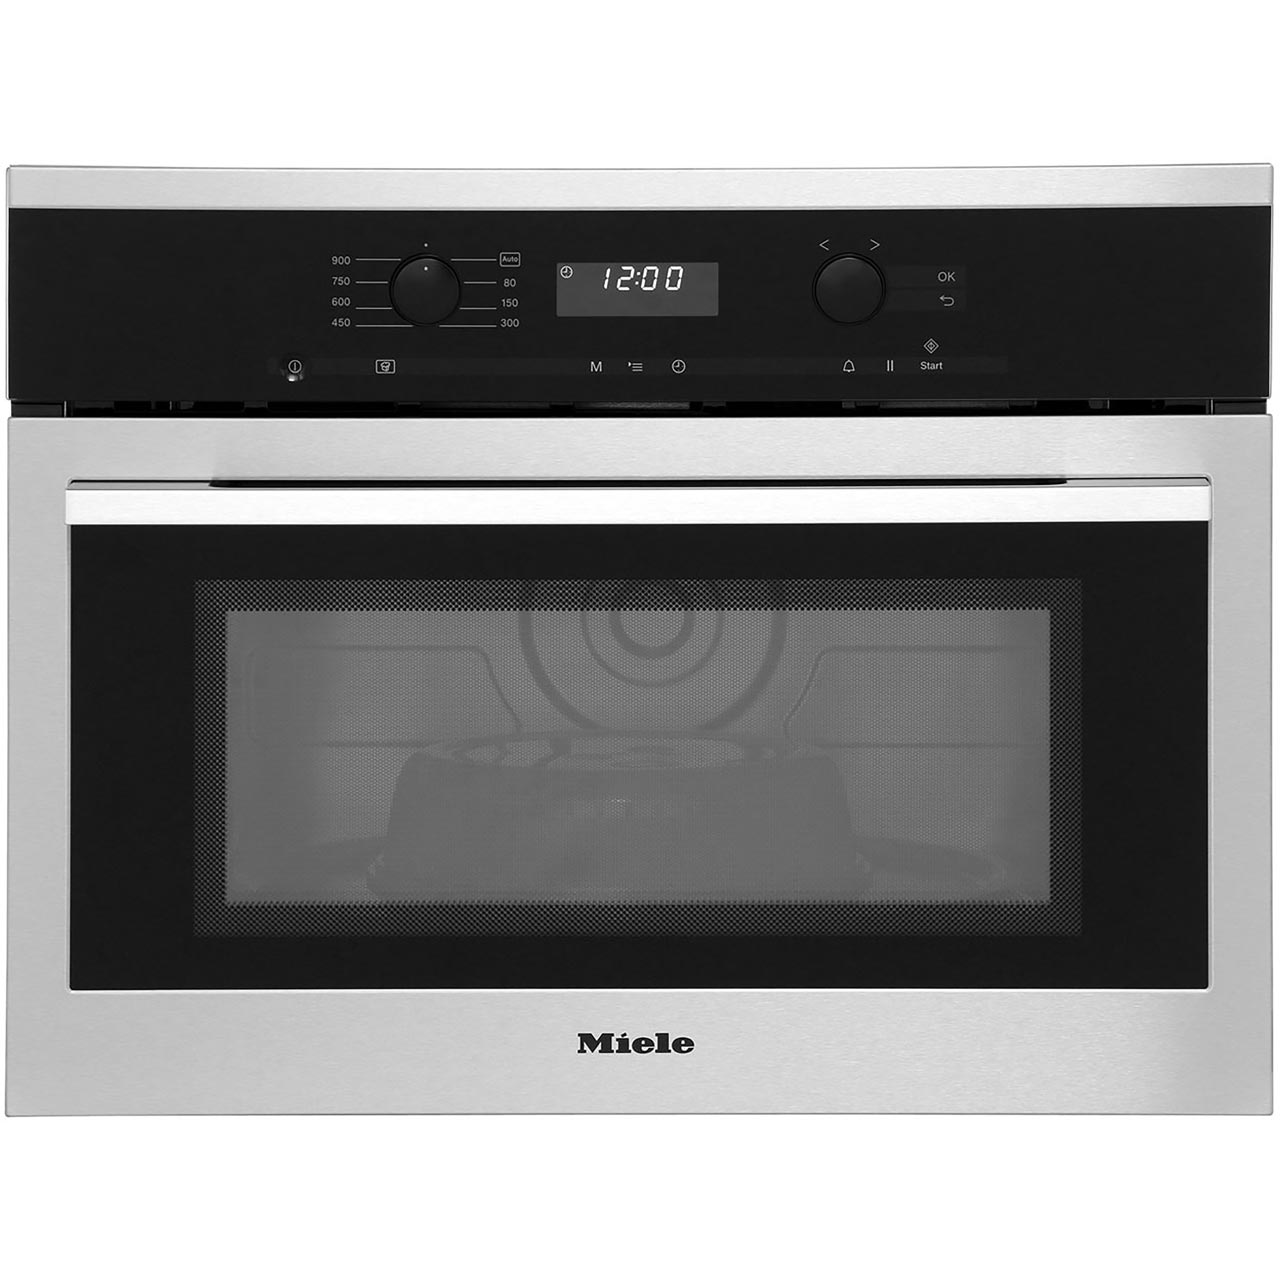 Built In Microwave Oven South Africa: Miele Microwave Oven